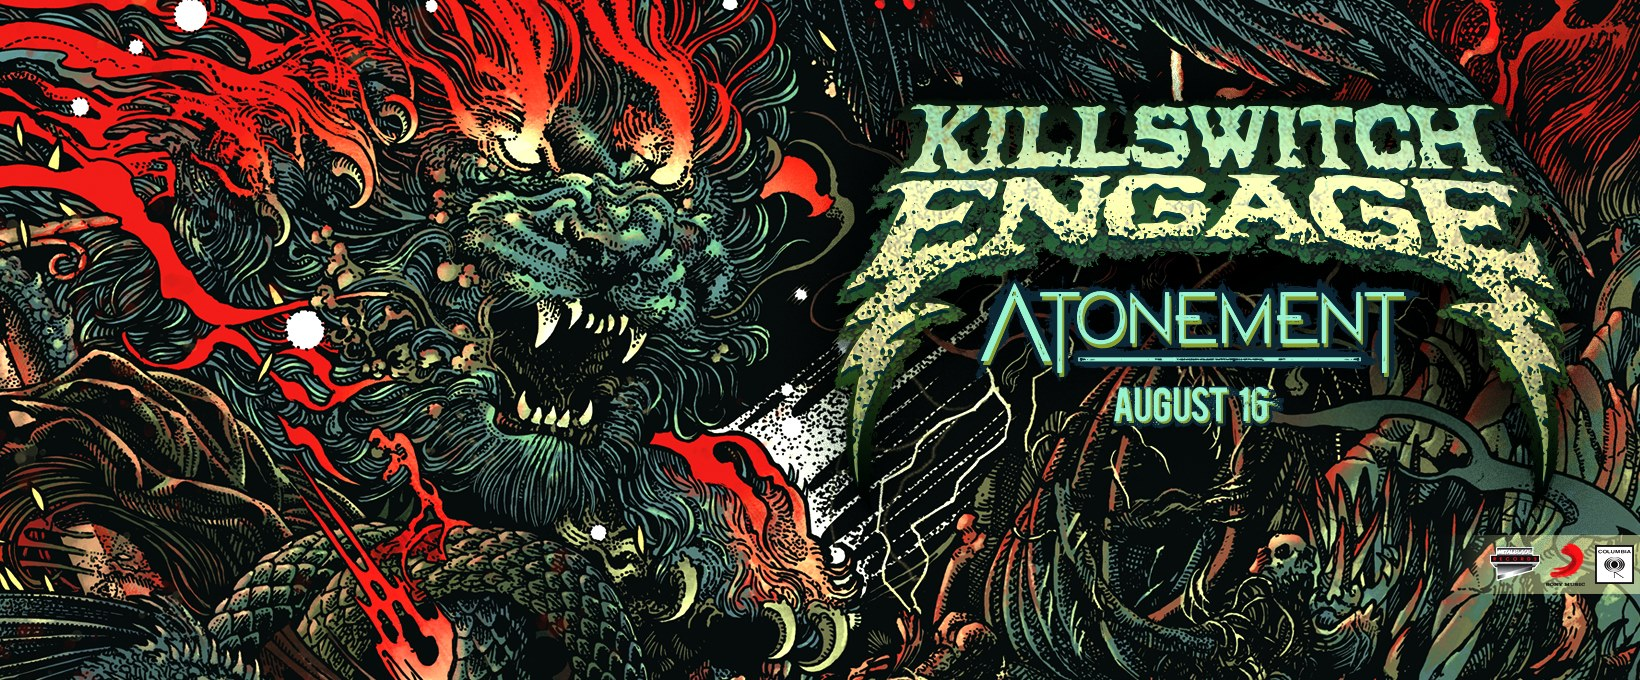 Killswitch Engage I Am Broken Too Video Paris Move